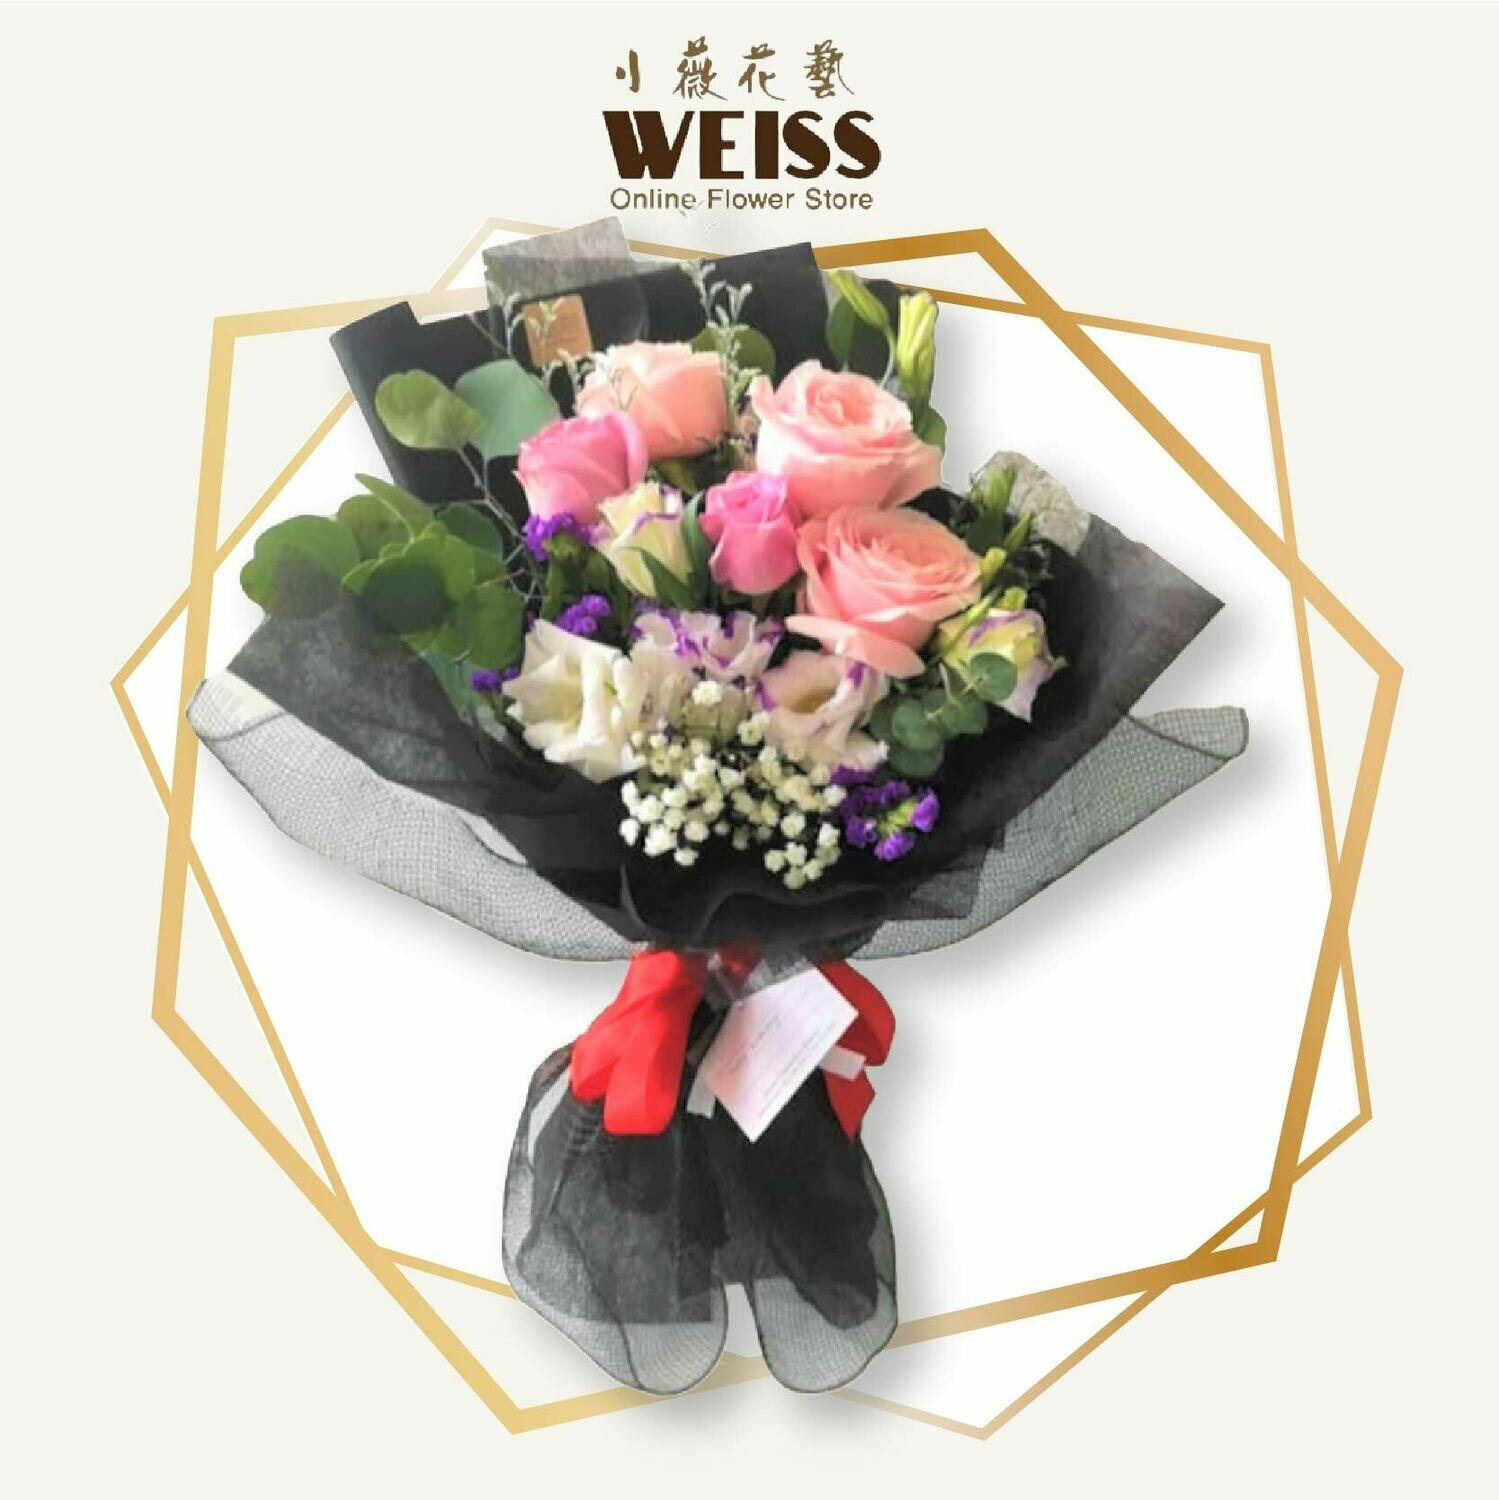 Weiss Florist 5stk mixed colour roses (Free Shipping! Only deliver in JB)